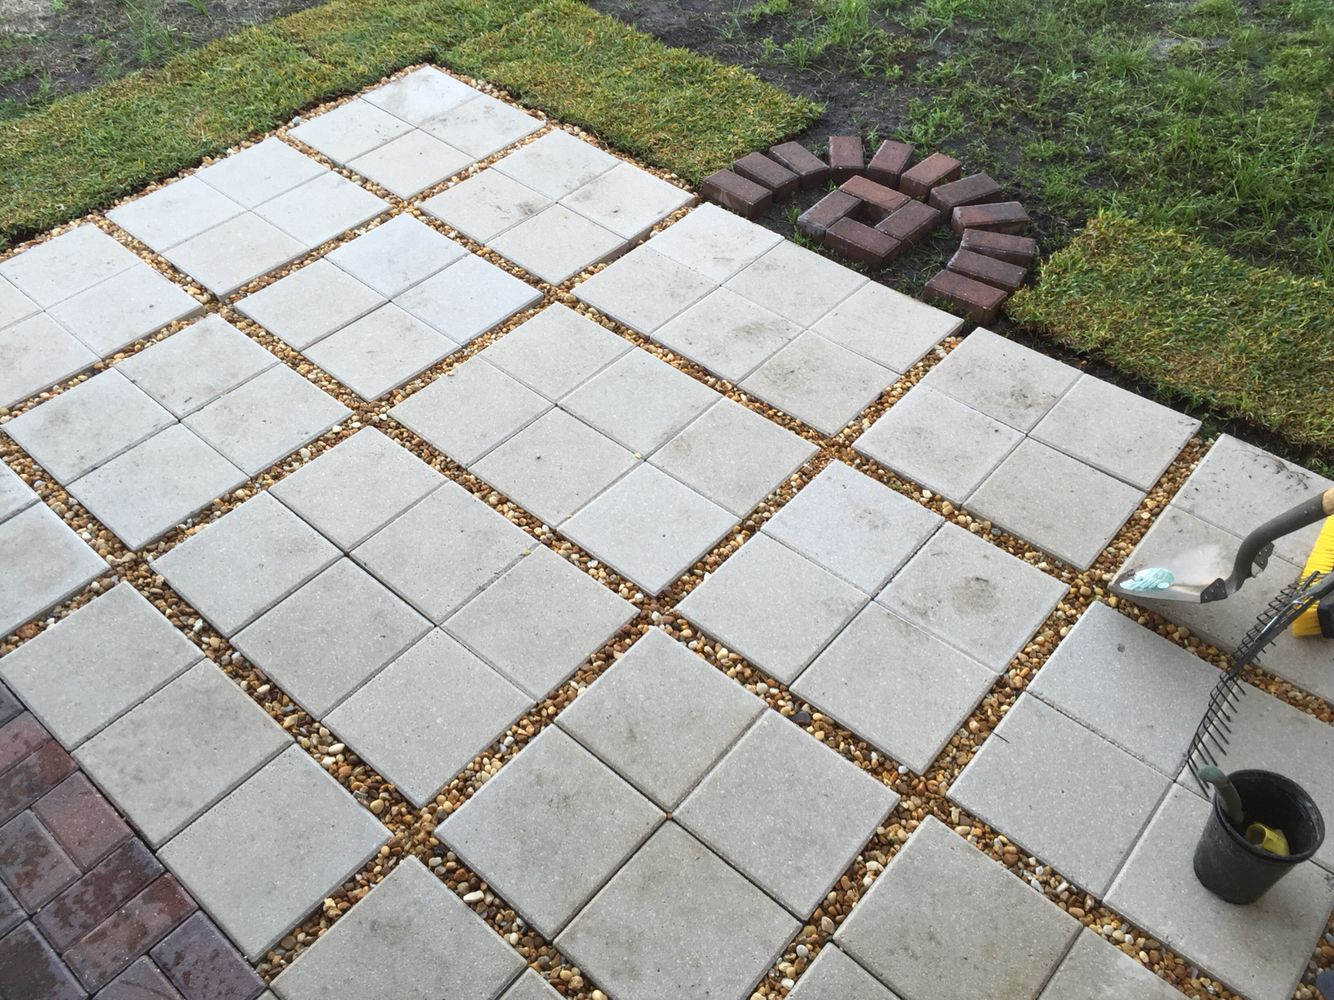 Paver Patio DIY! 12x12 Pavers With Gravel Between Them.